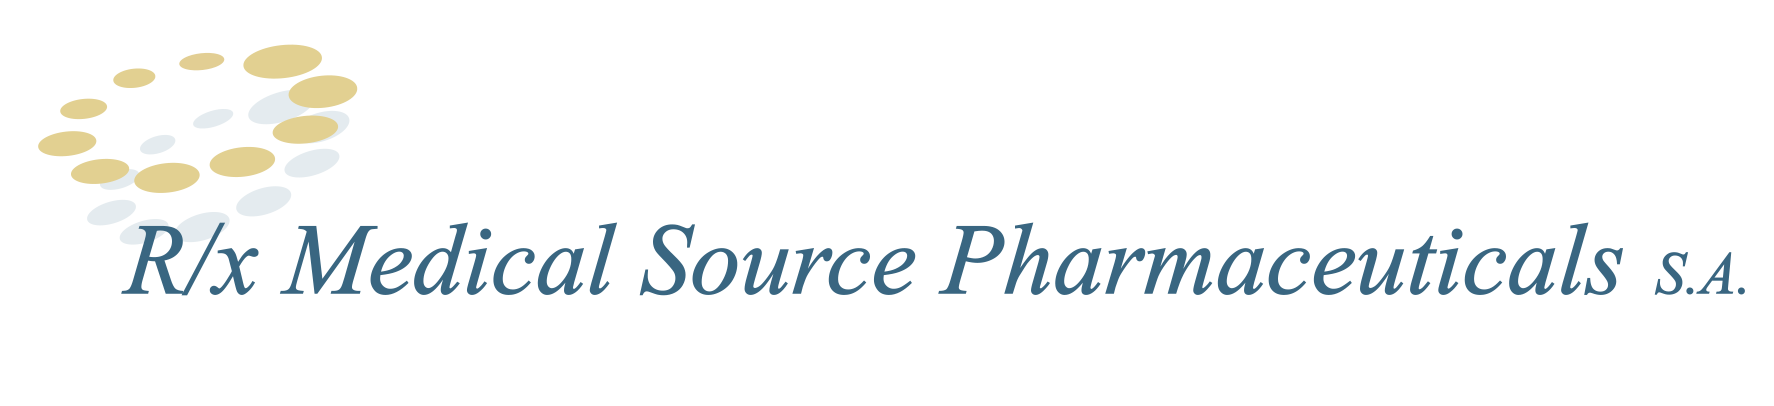 R-X Medical Source Pharmaceutical s.a.